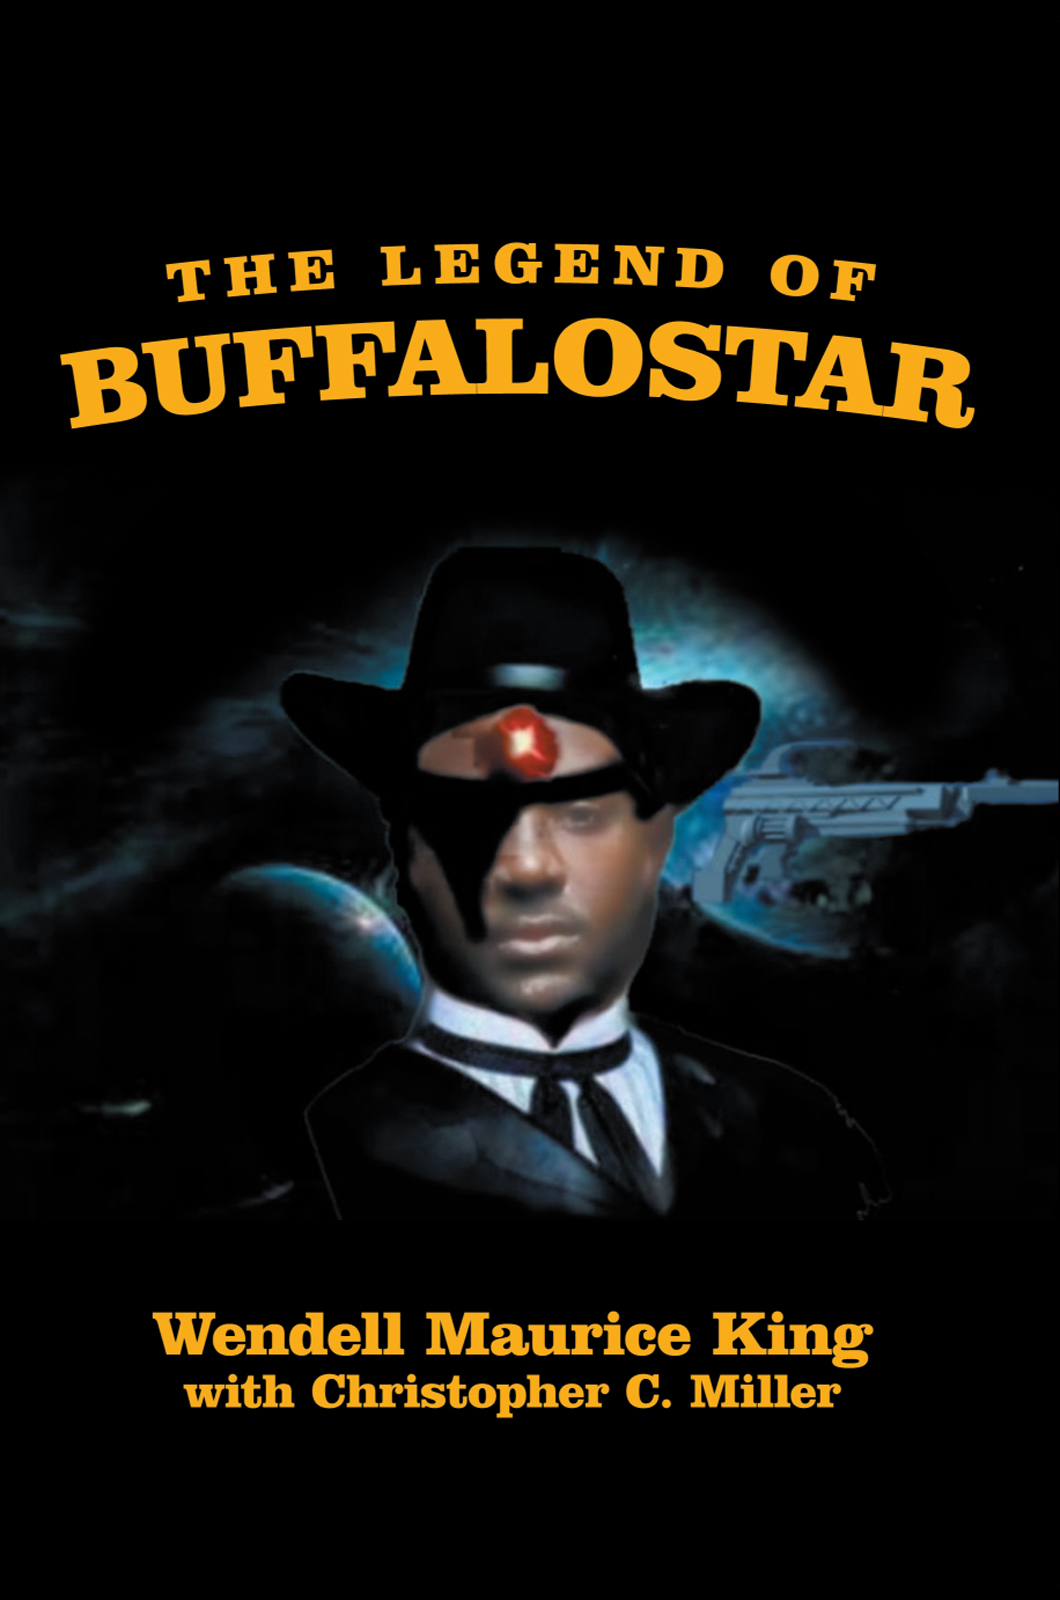 The Legend of Buffalostar